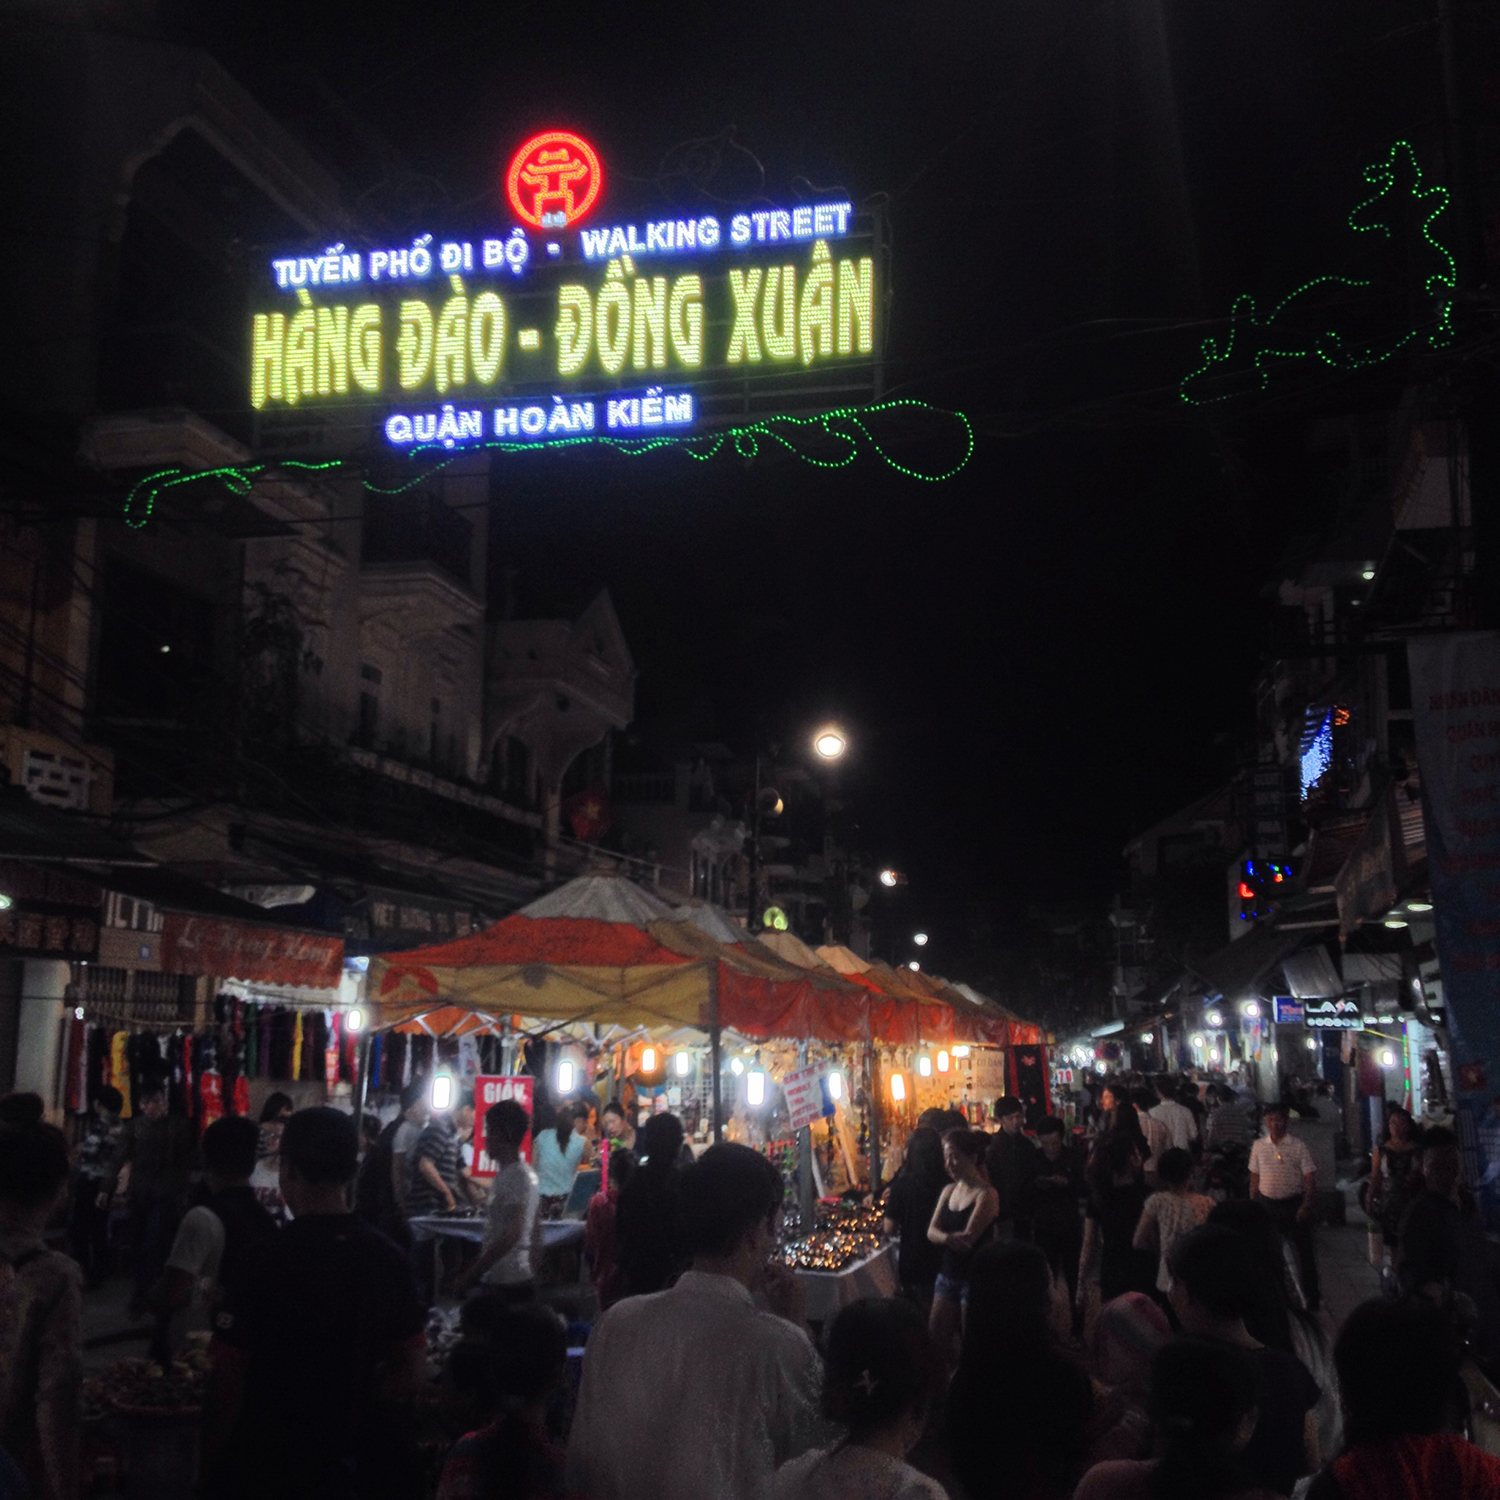 dong_xuan_night_market_2